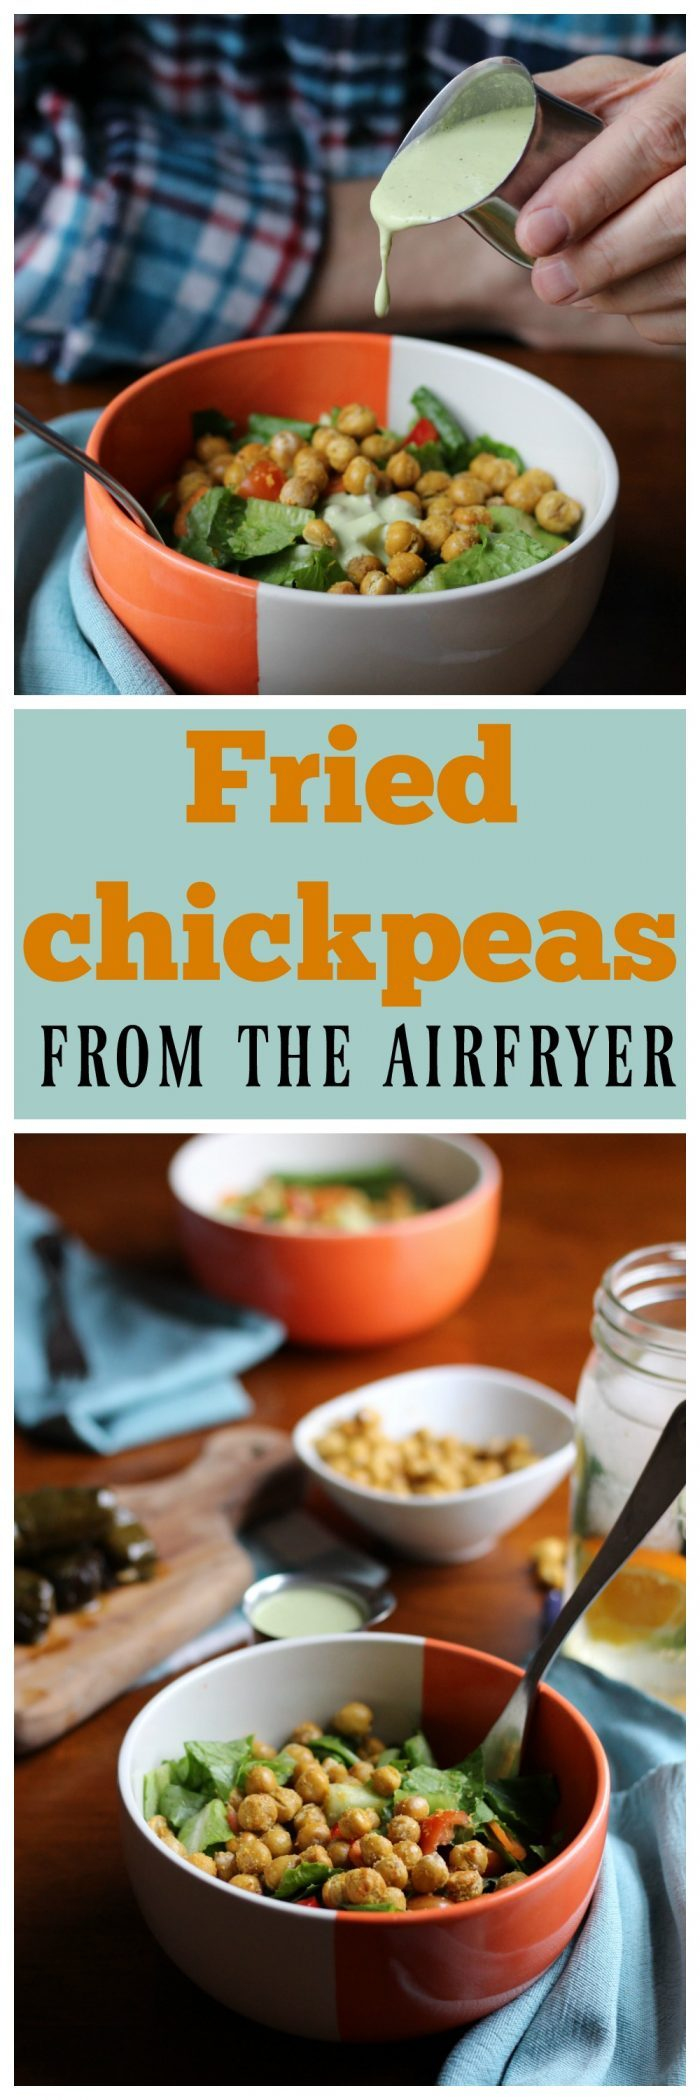 Make fried chickpeas in the airfryer. They're great as a salad topping or snack. Vegan & packed with protein.   cadryskitchen.com